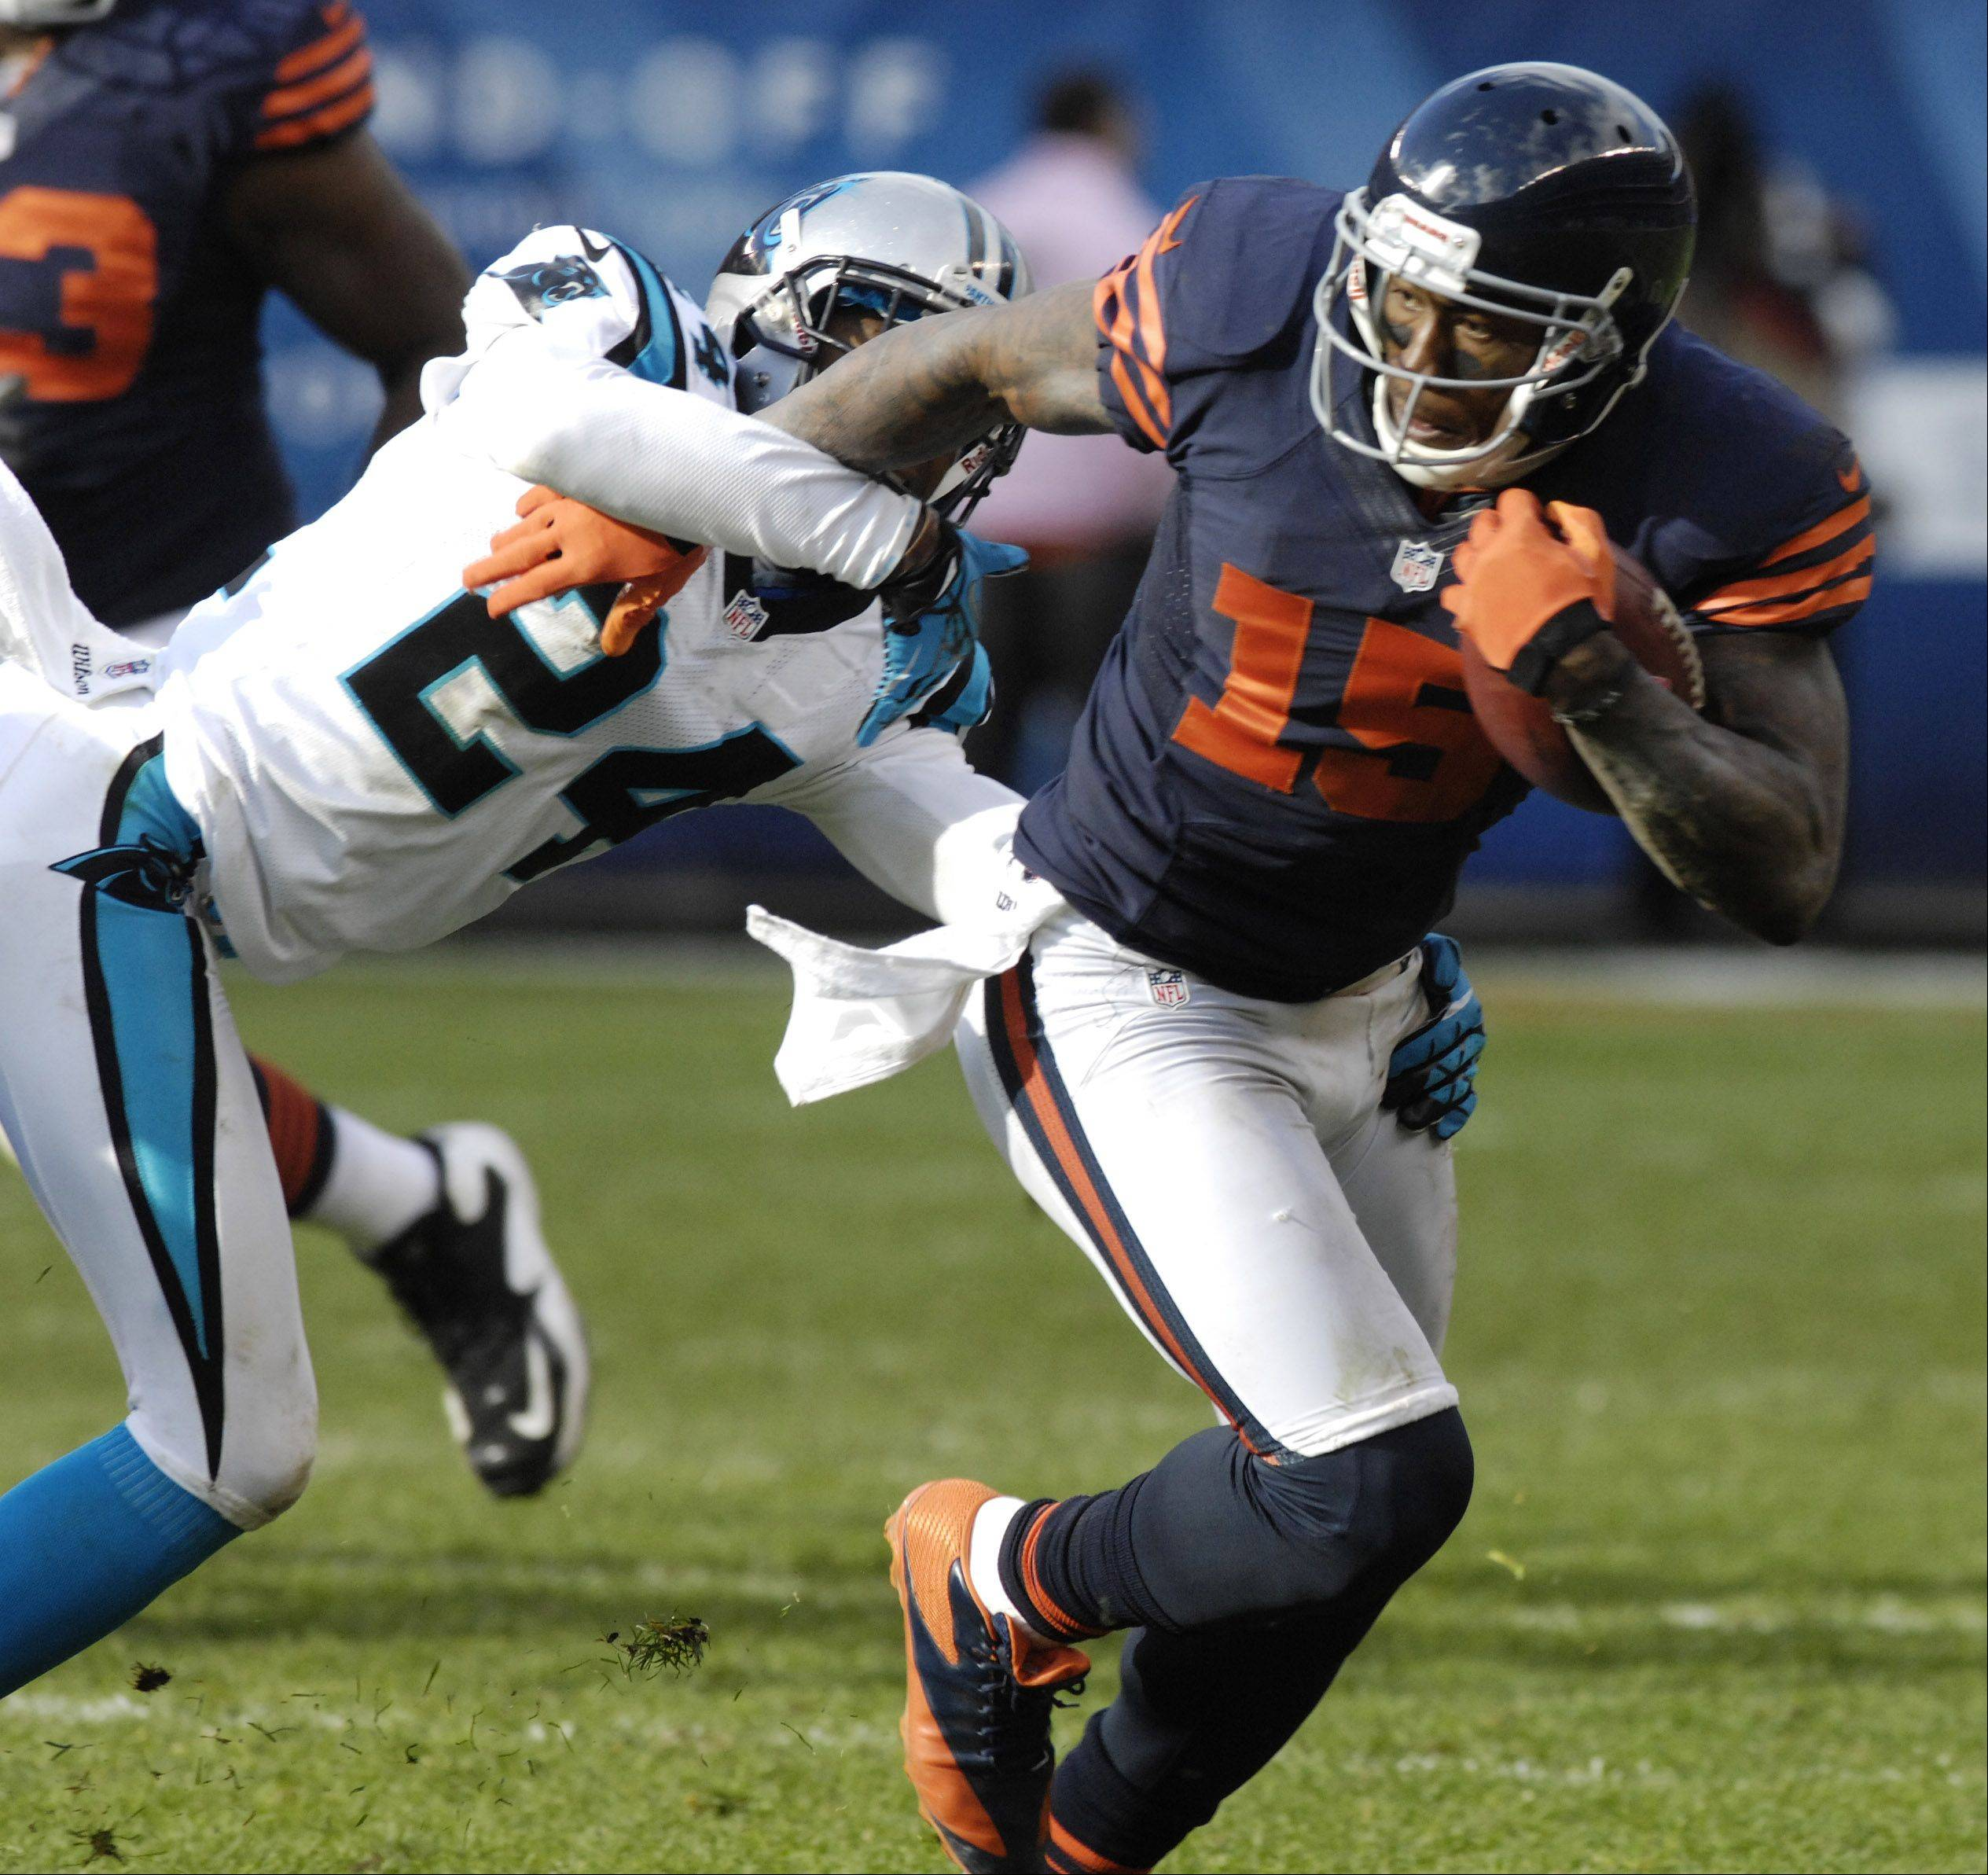 Bears wide receiver Brandon Marshall helps his team get within field-goal range while being pursued by Carolina Panthers defensive back Josh Norman during Sunday�s game at Soldier Field.